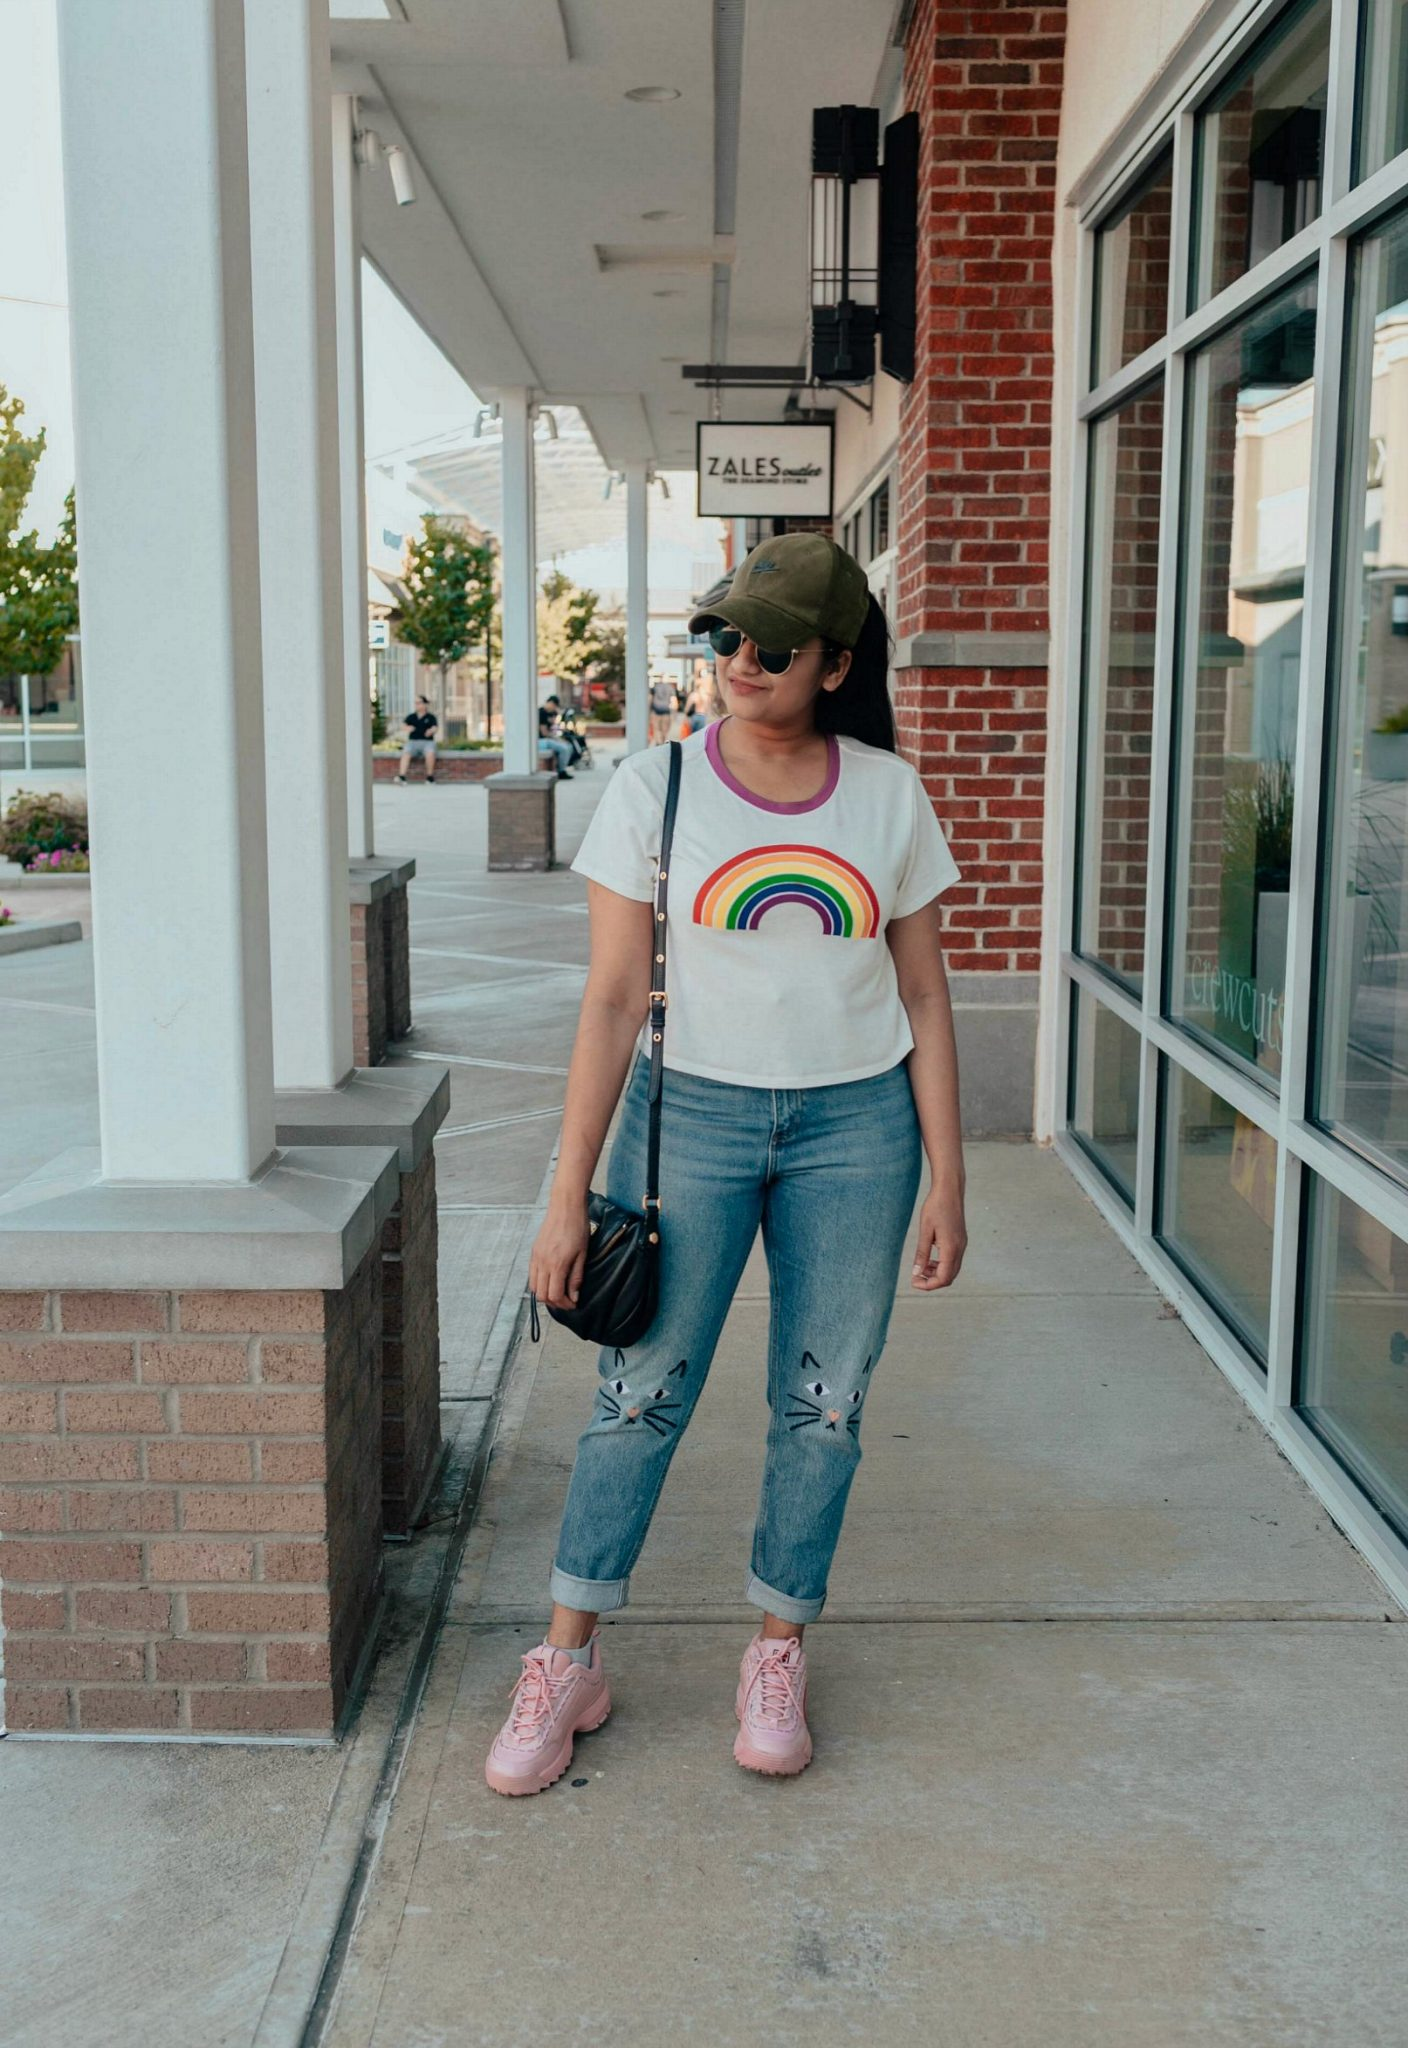 how to wear chunky or dad or ugly sneakers casually| 5 Chic Ways to Wear the New Chunky Sneaker Trend: ugly sneakers & dad sneakers, featured by popular US fashion blogger, Dreaming Loud